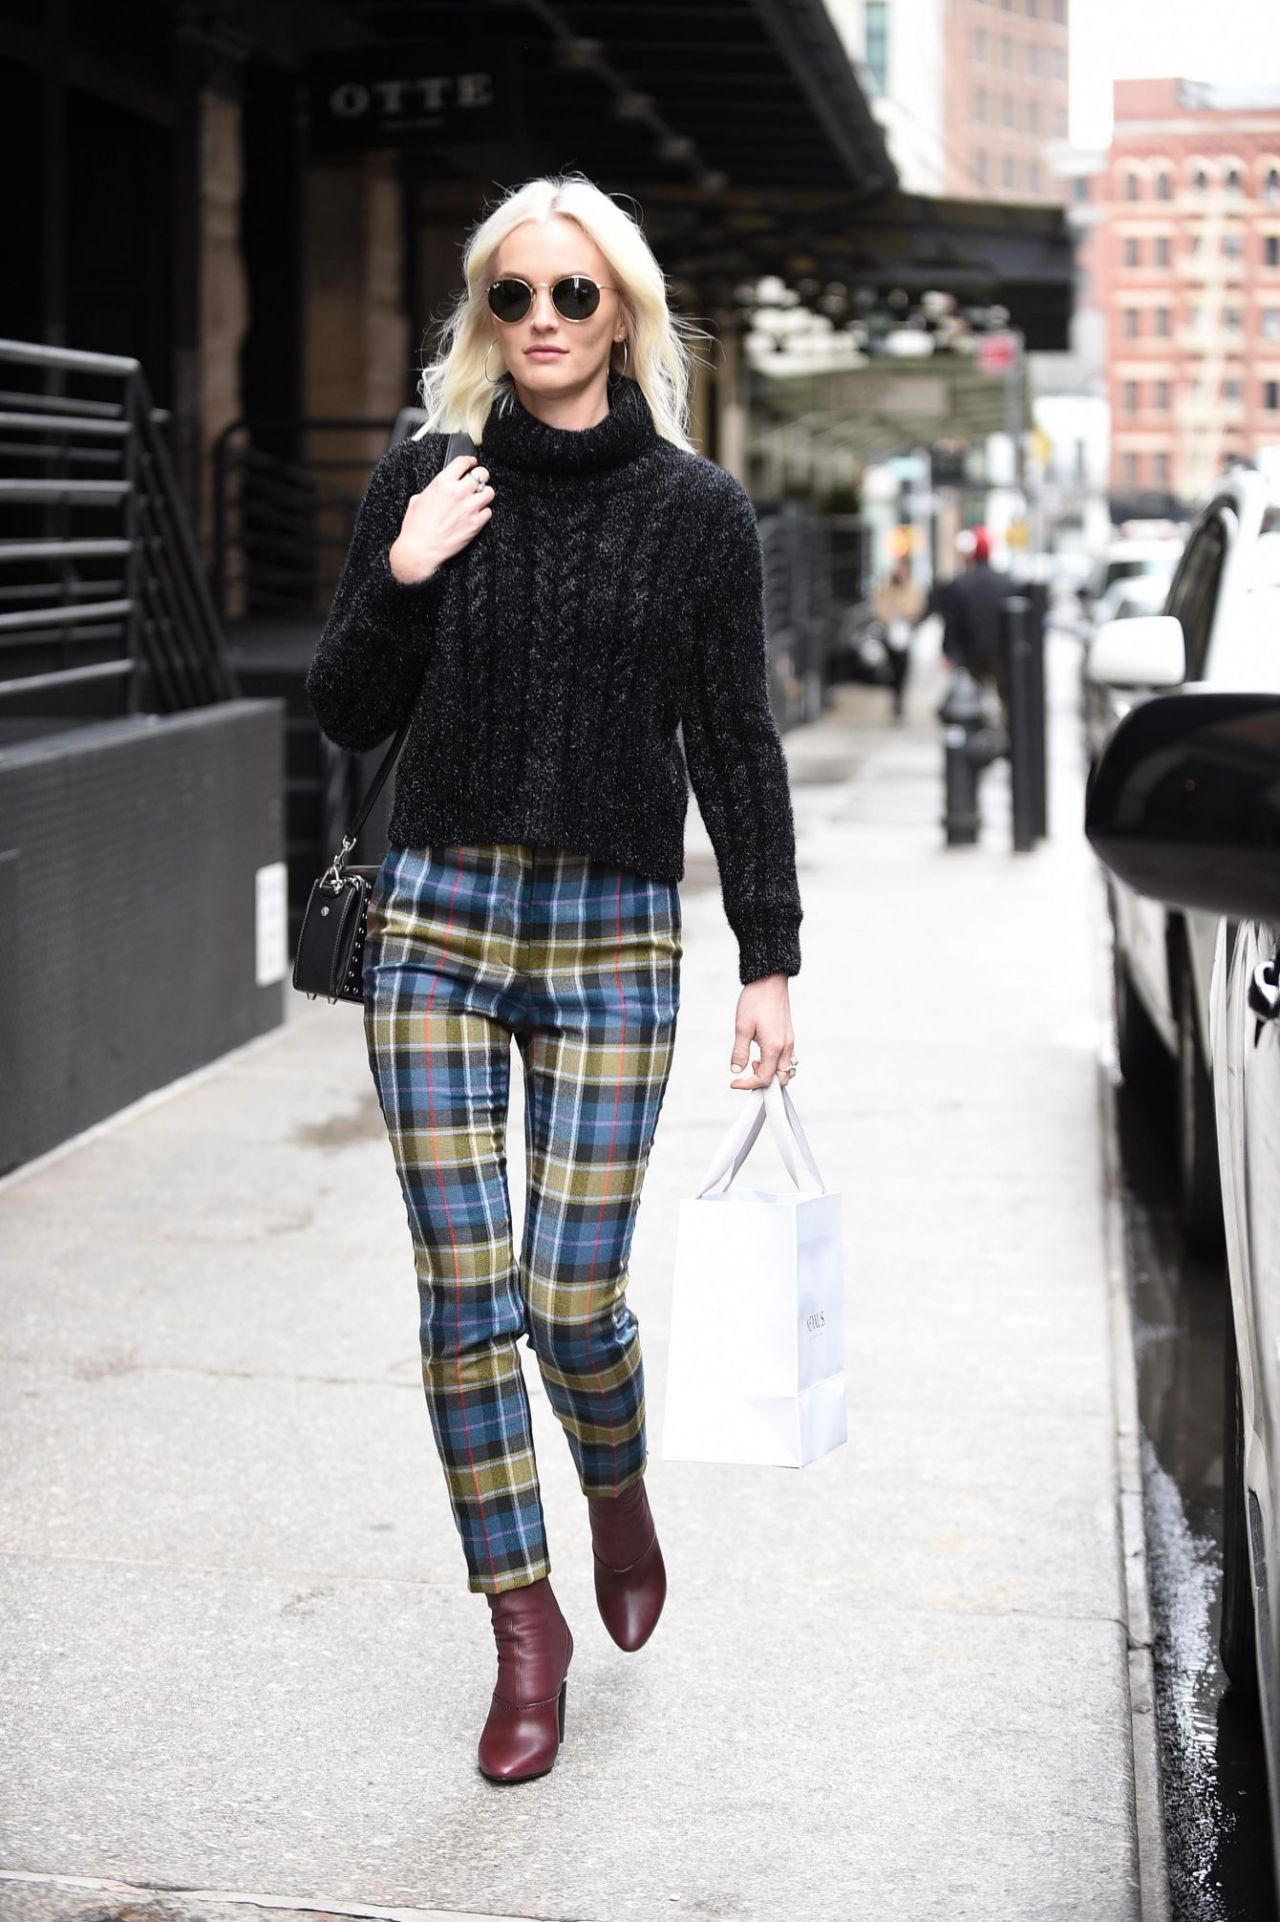 Leighton Meester Street Fashion Out In New York 04 03 2018